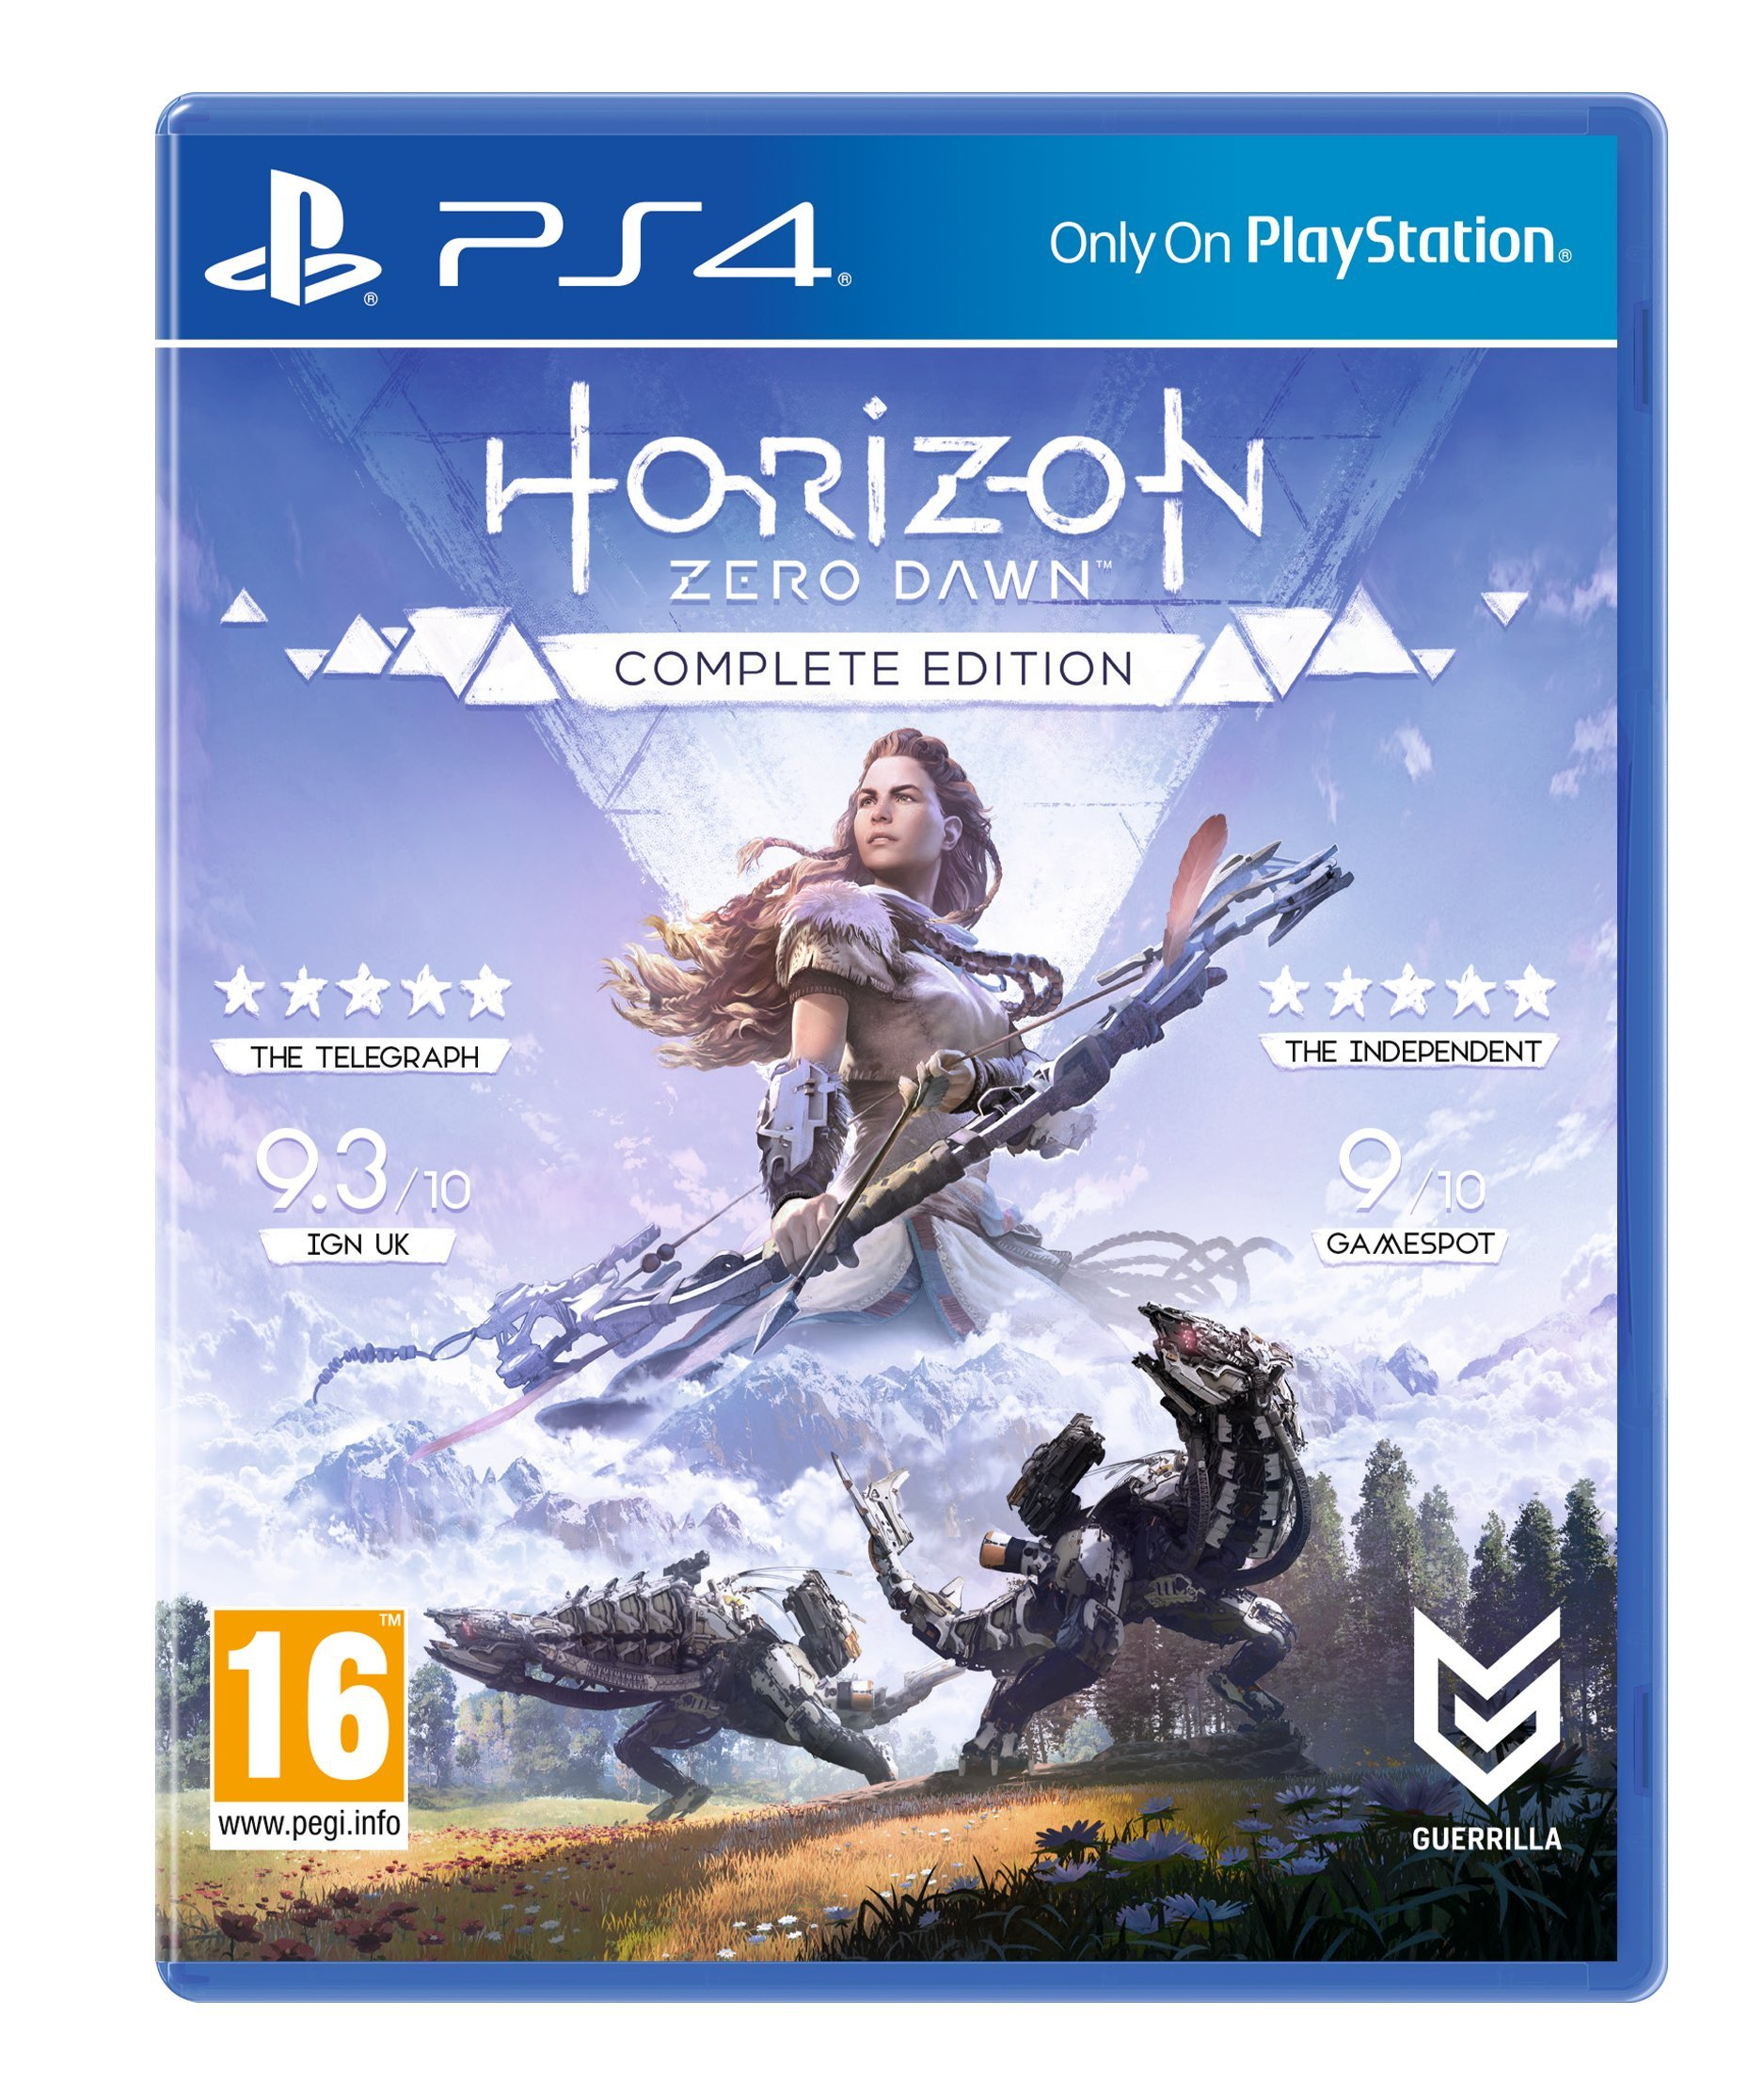 Horizon Zero Dawn: Complete Edition Ps4 Playstation 4 Game product image